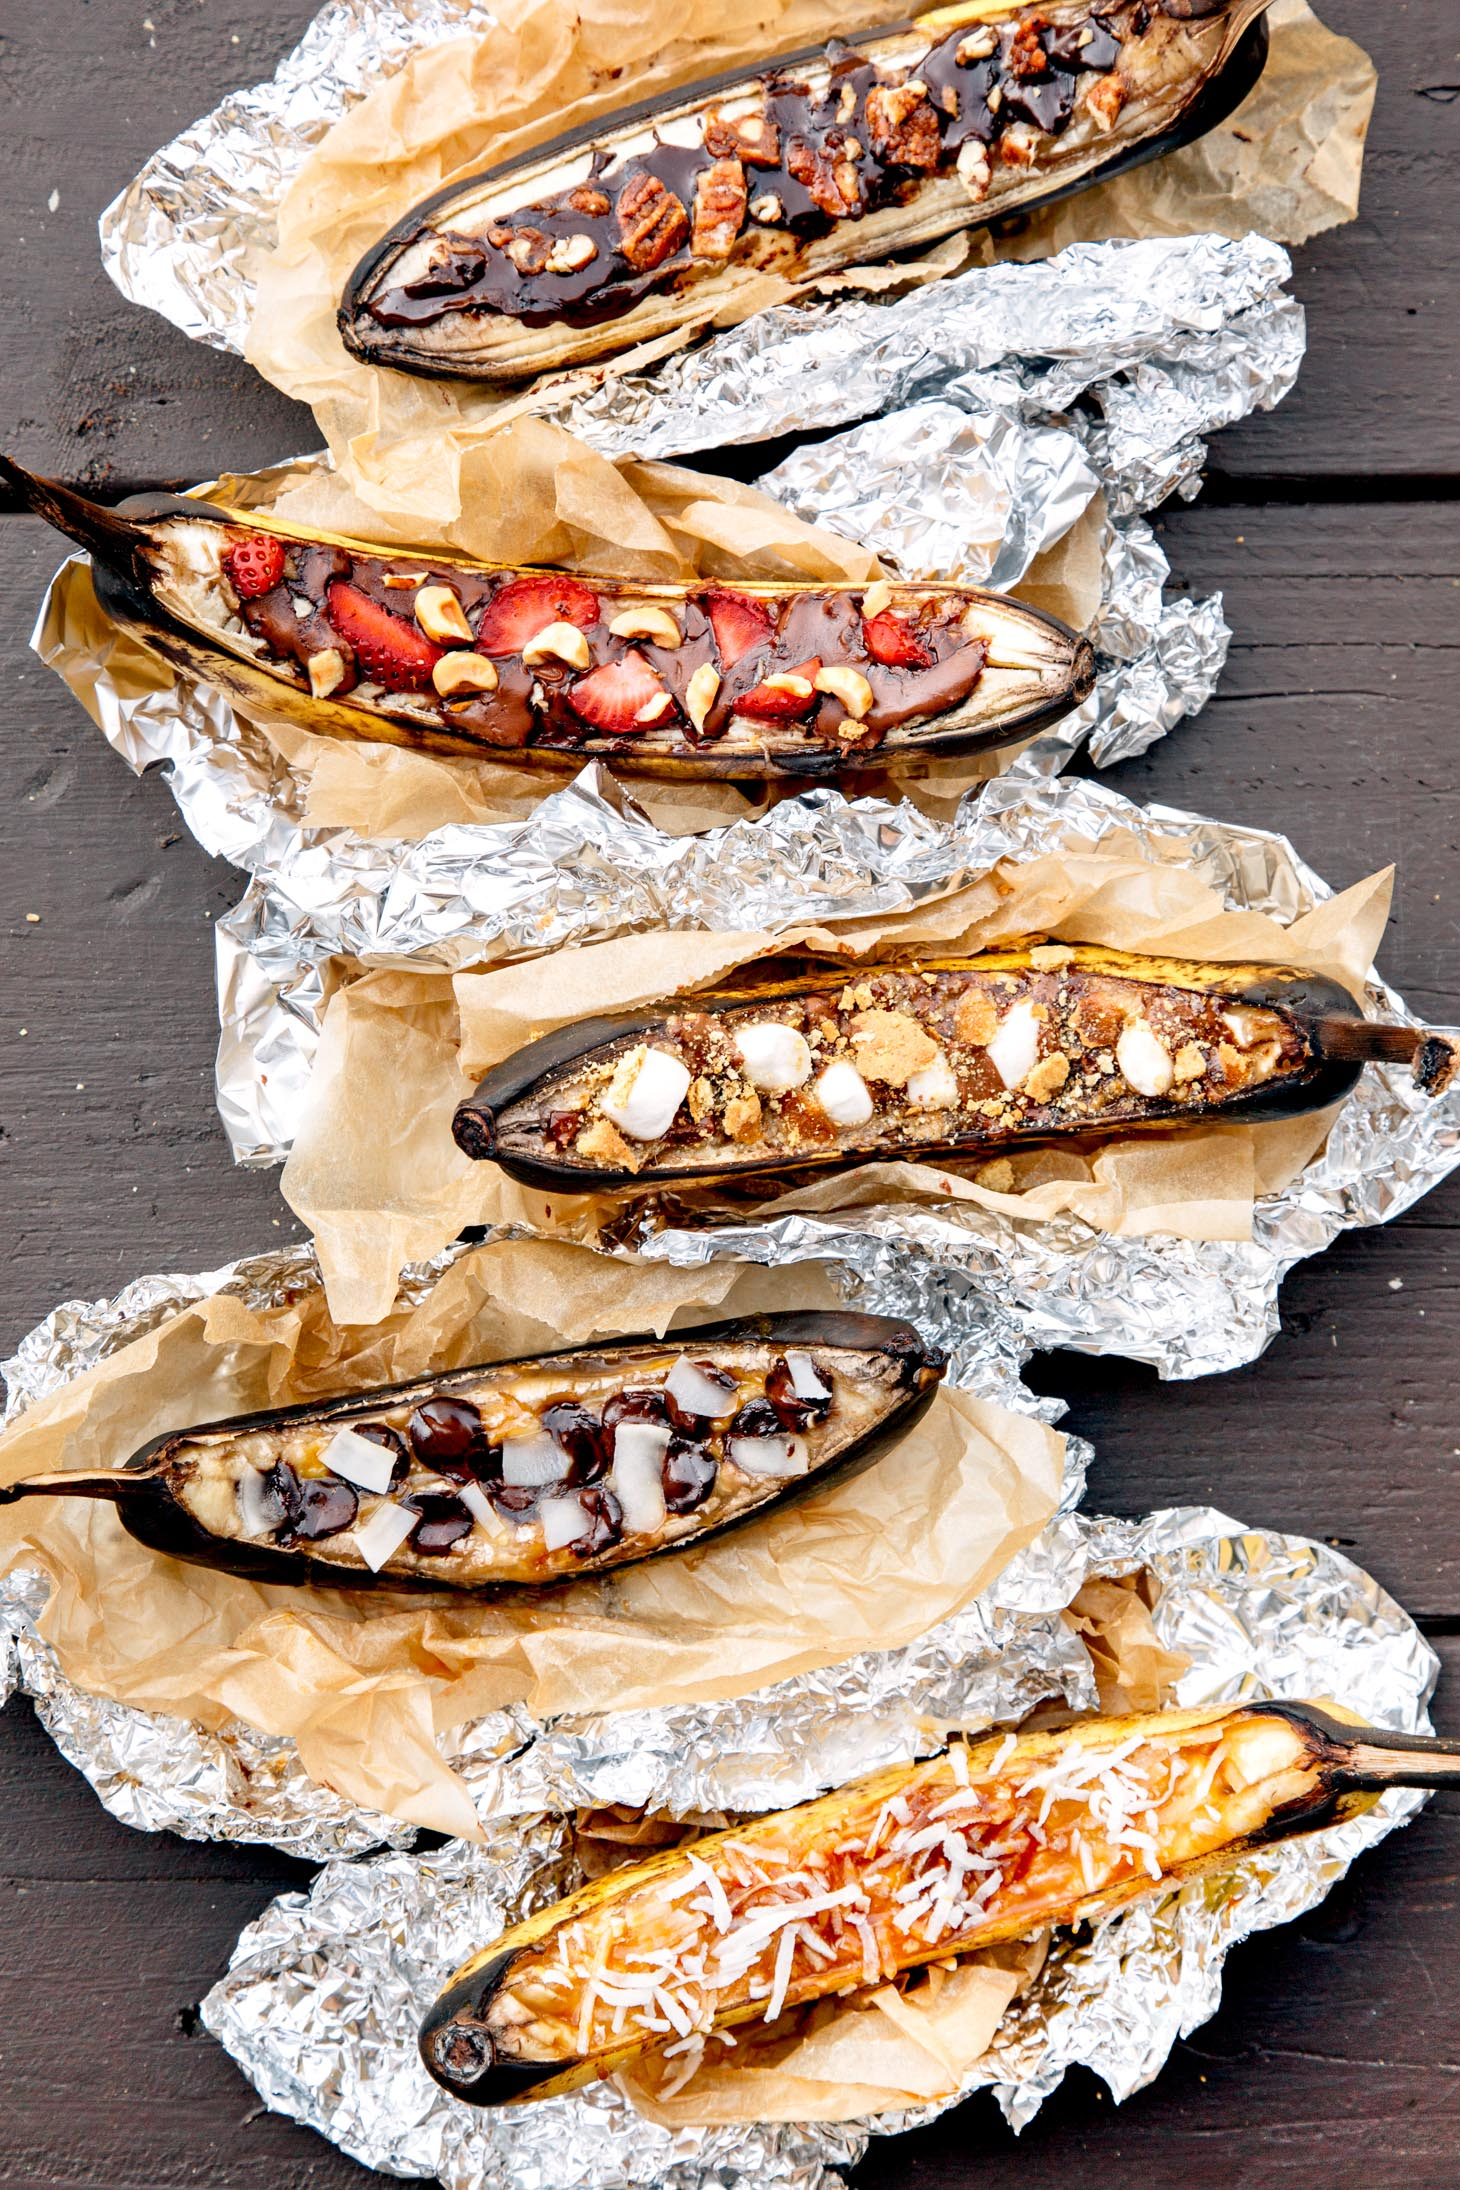 Learn how to make Campfire Banana Boats - a classic camping dessert!